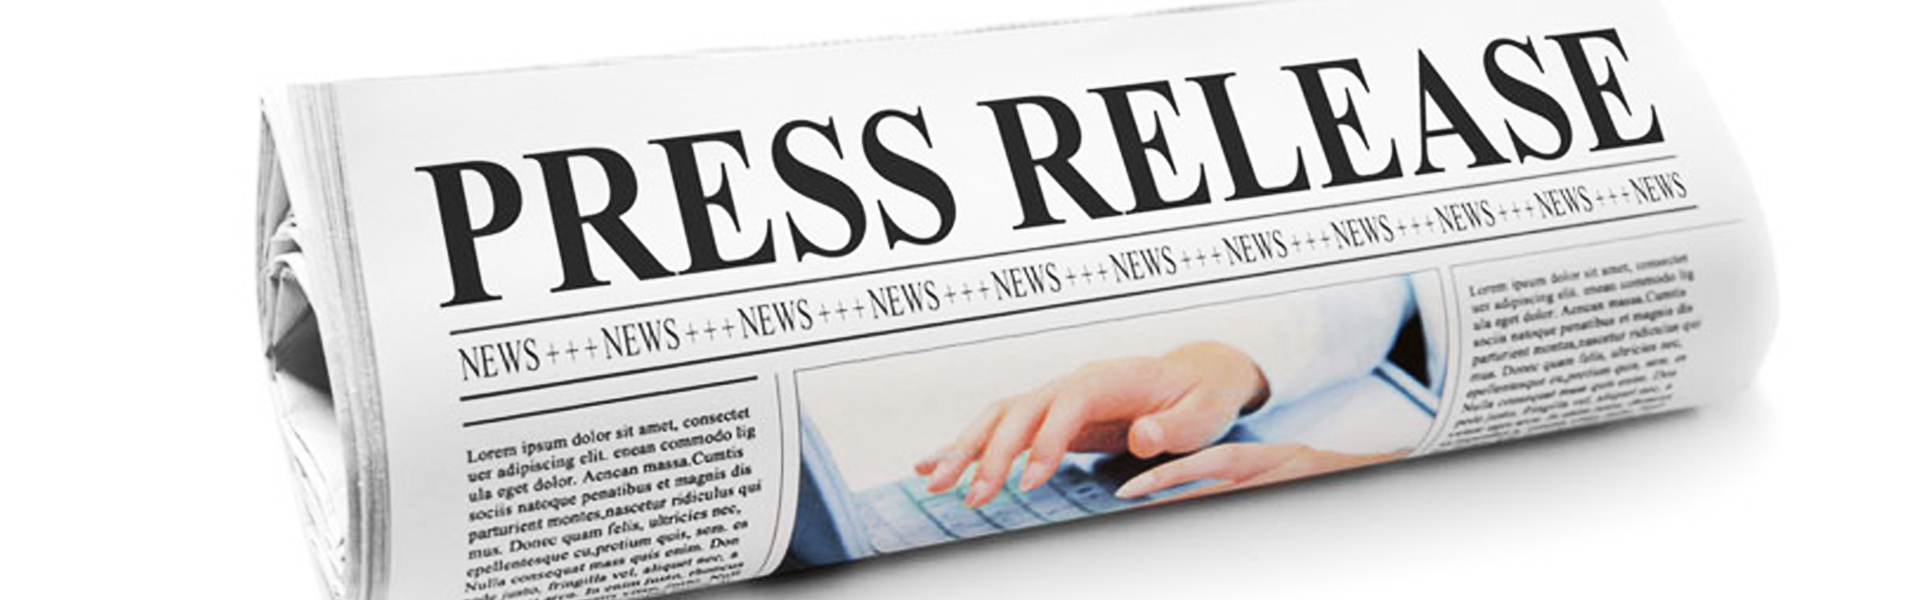 Press release writing,  6000+ press releases written to date,  High standard of English guaranteed